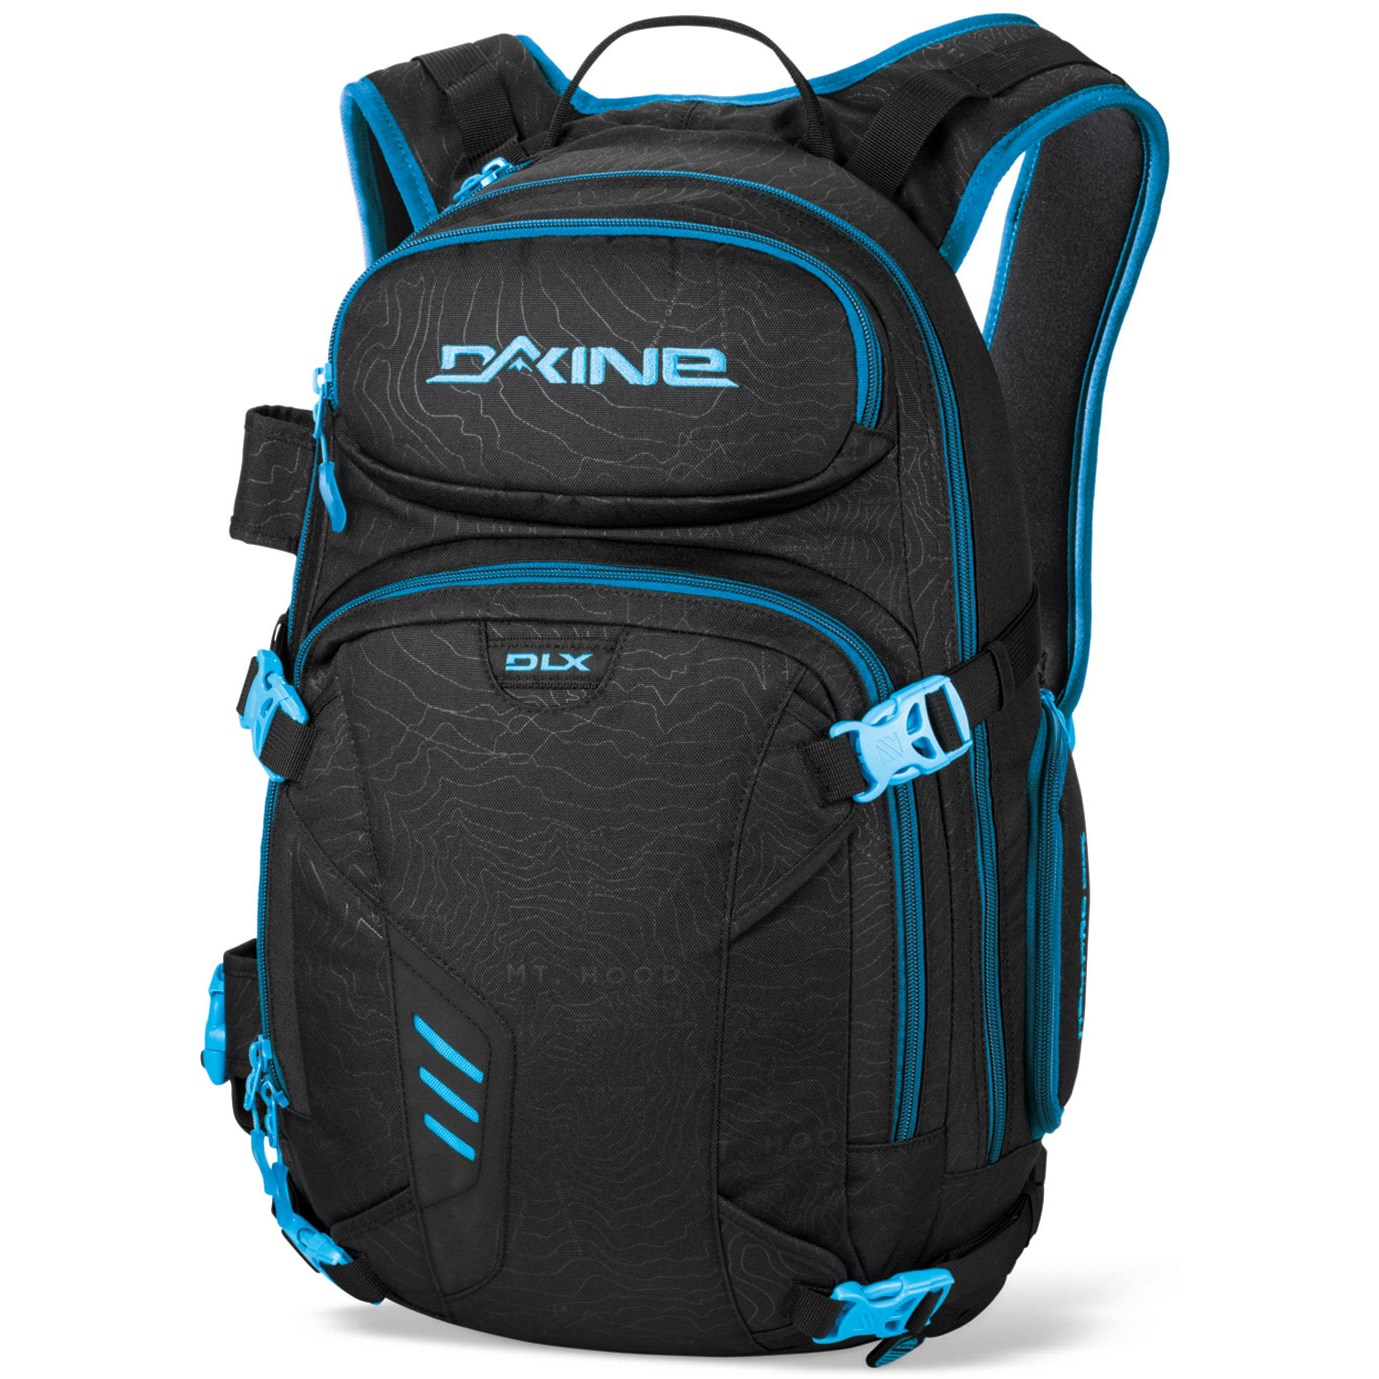 Cheap Dakine Backpacks becd3DbV